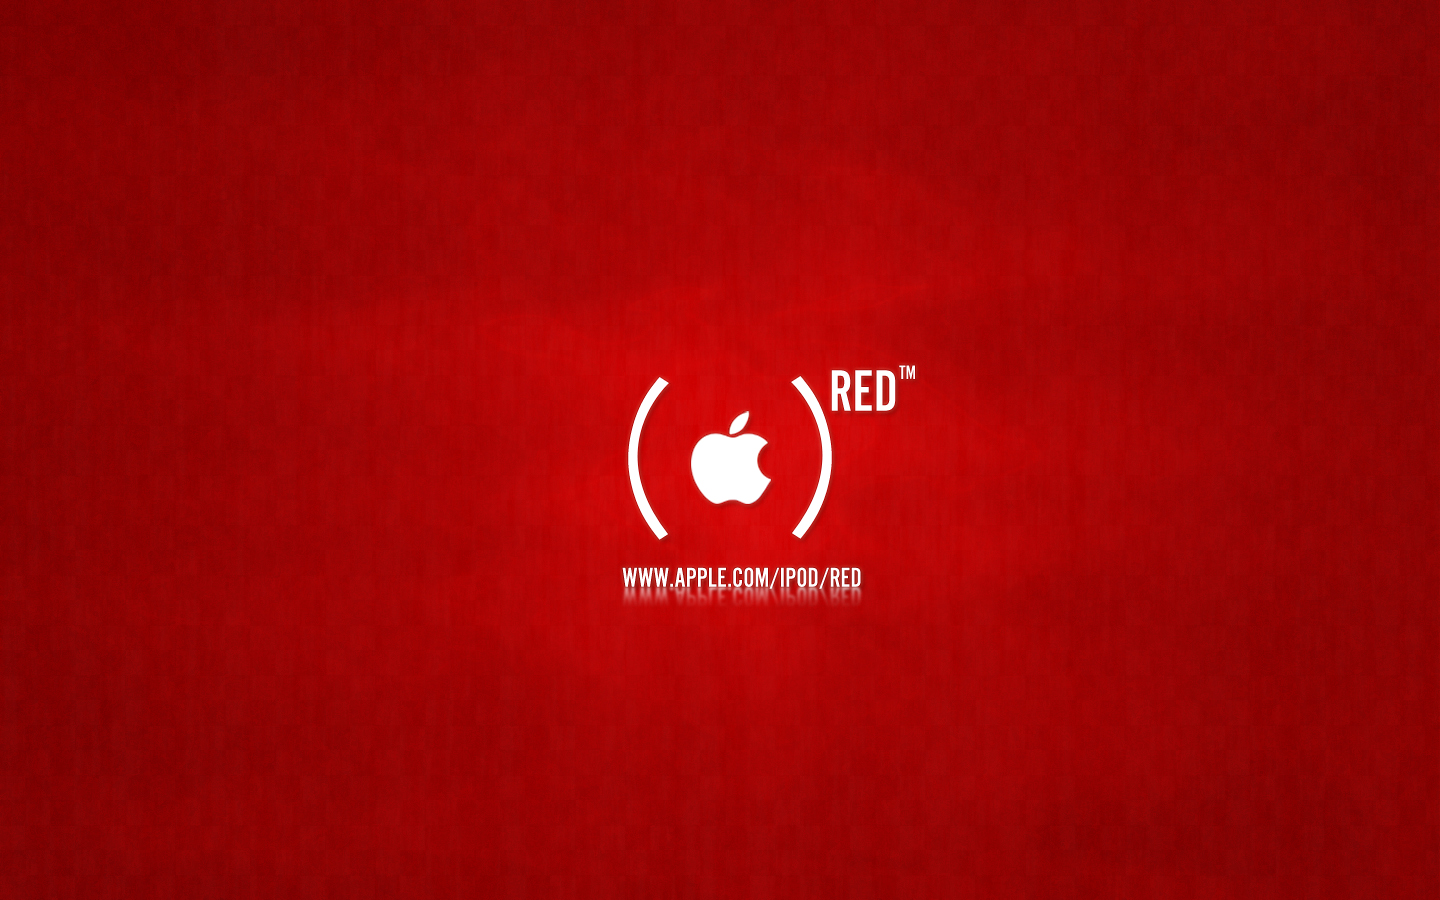 Product RED Wallpapers  Tzviatkos Blog